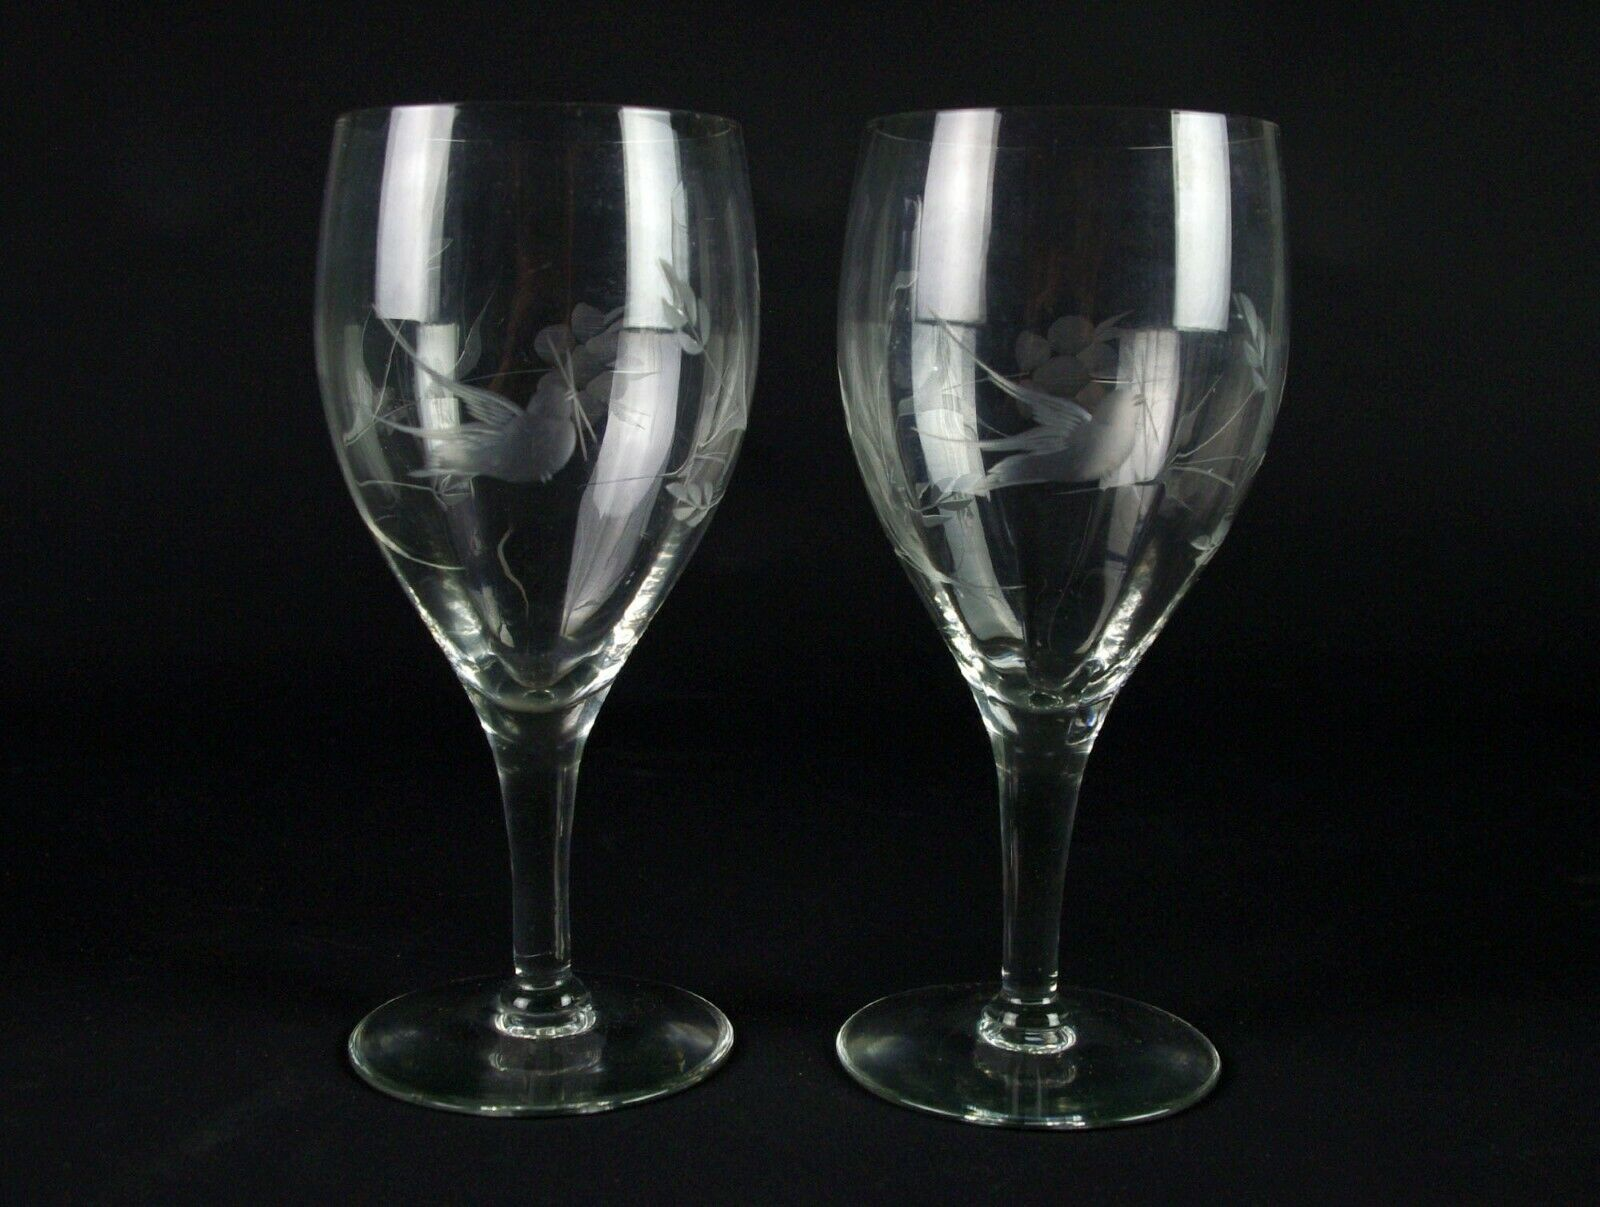 Primary image for Fostoria 863 Optic Goblets Set Gray Cut Bird & Floral, Antique Elegant Glass 7""